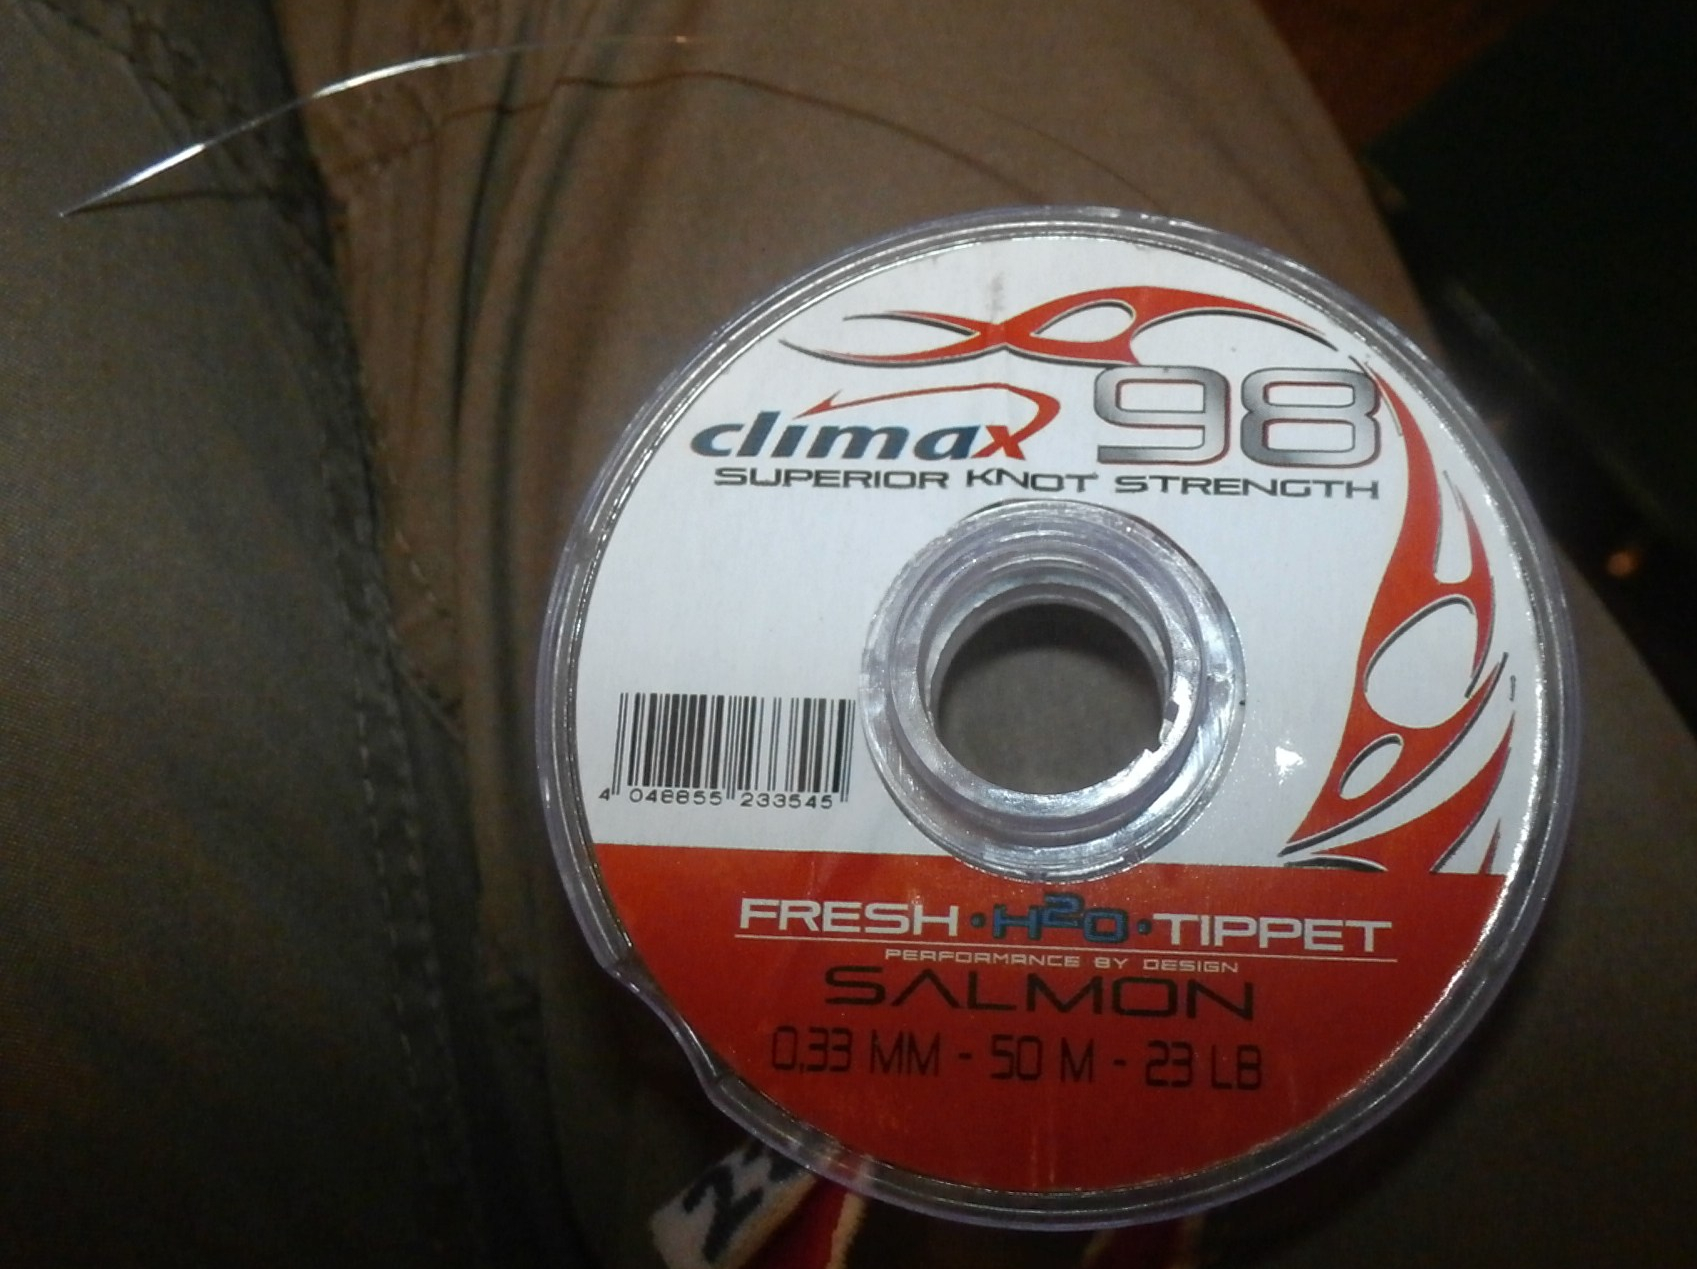 Climax 98 - I use this for making up salmon leaders